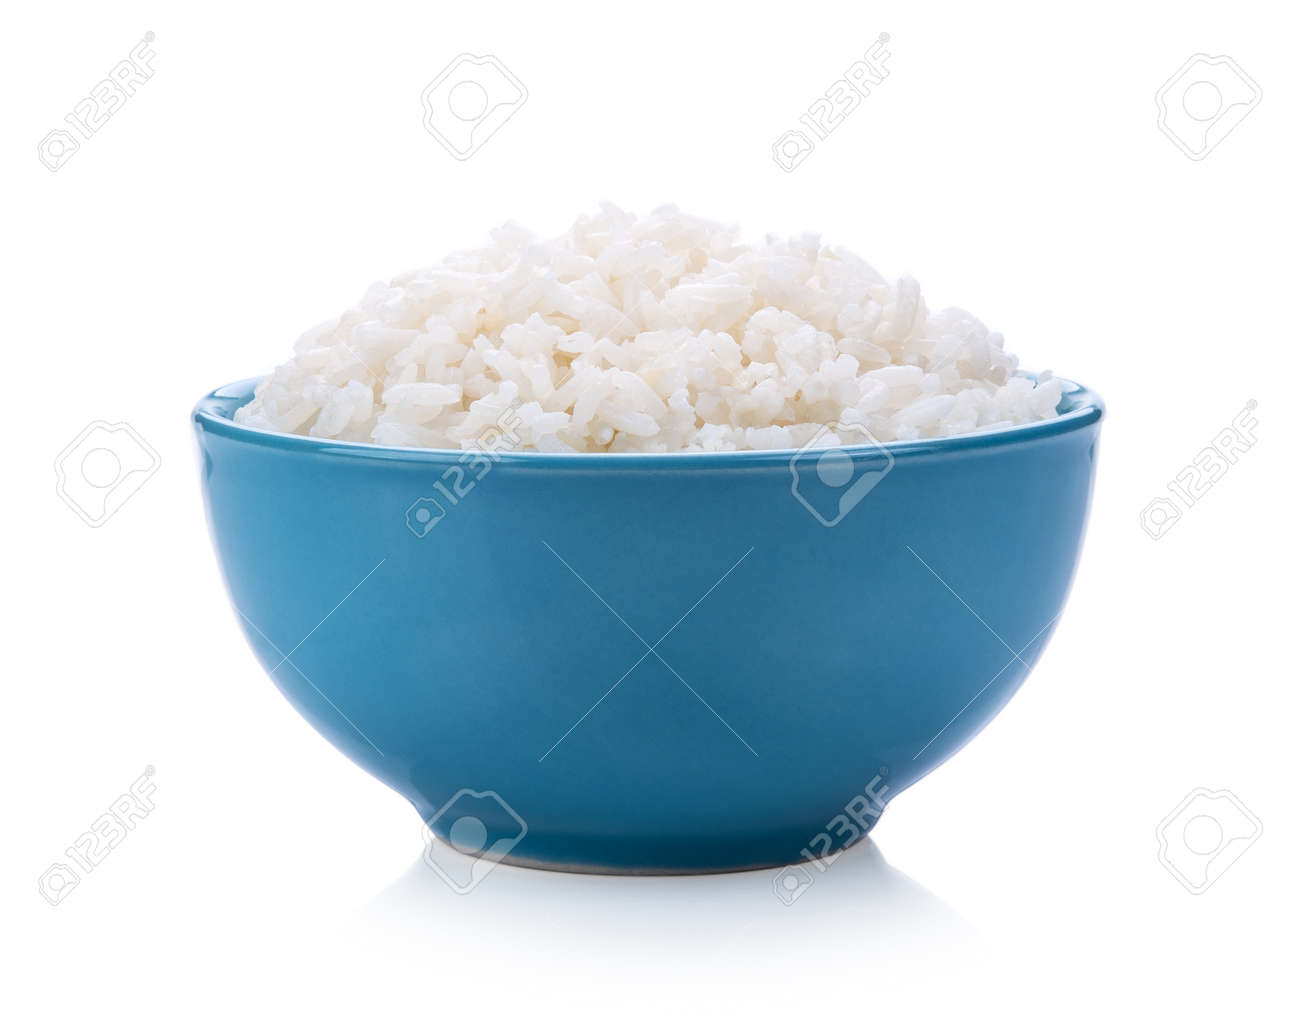 Rice in a bowl on white background - 94072664